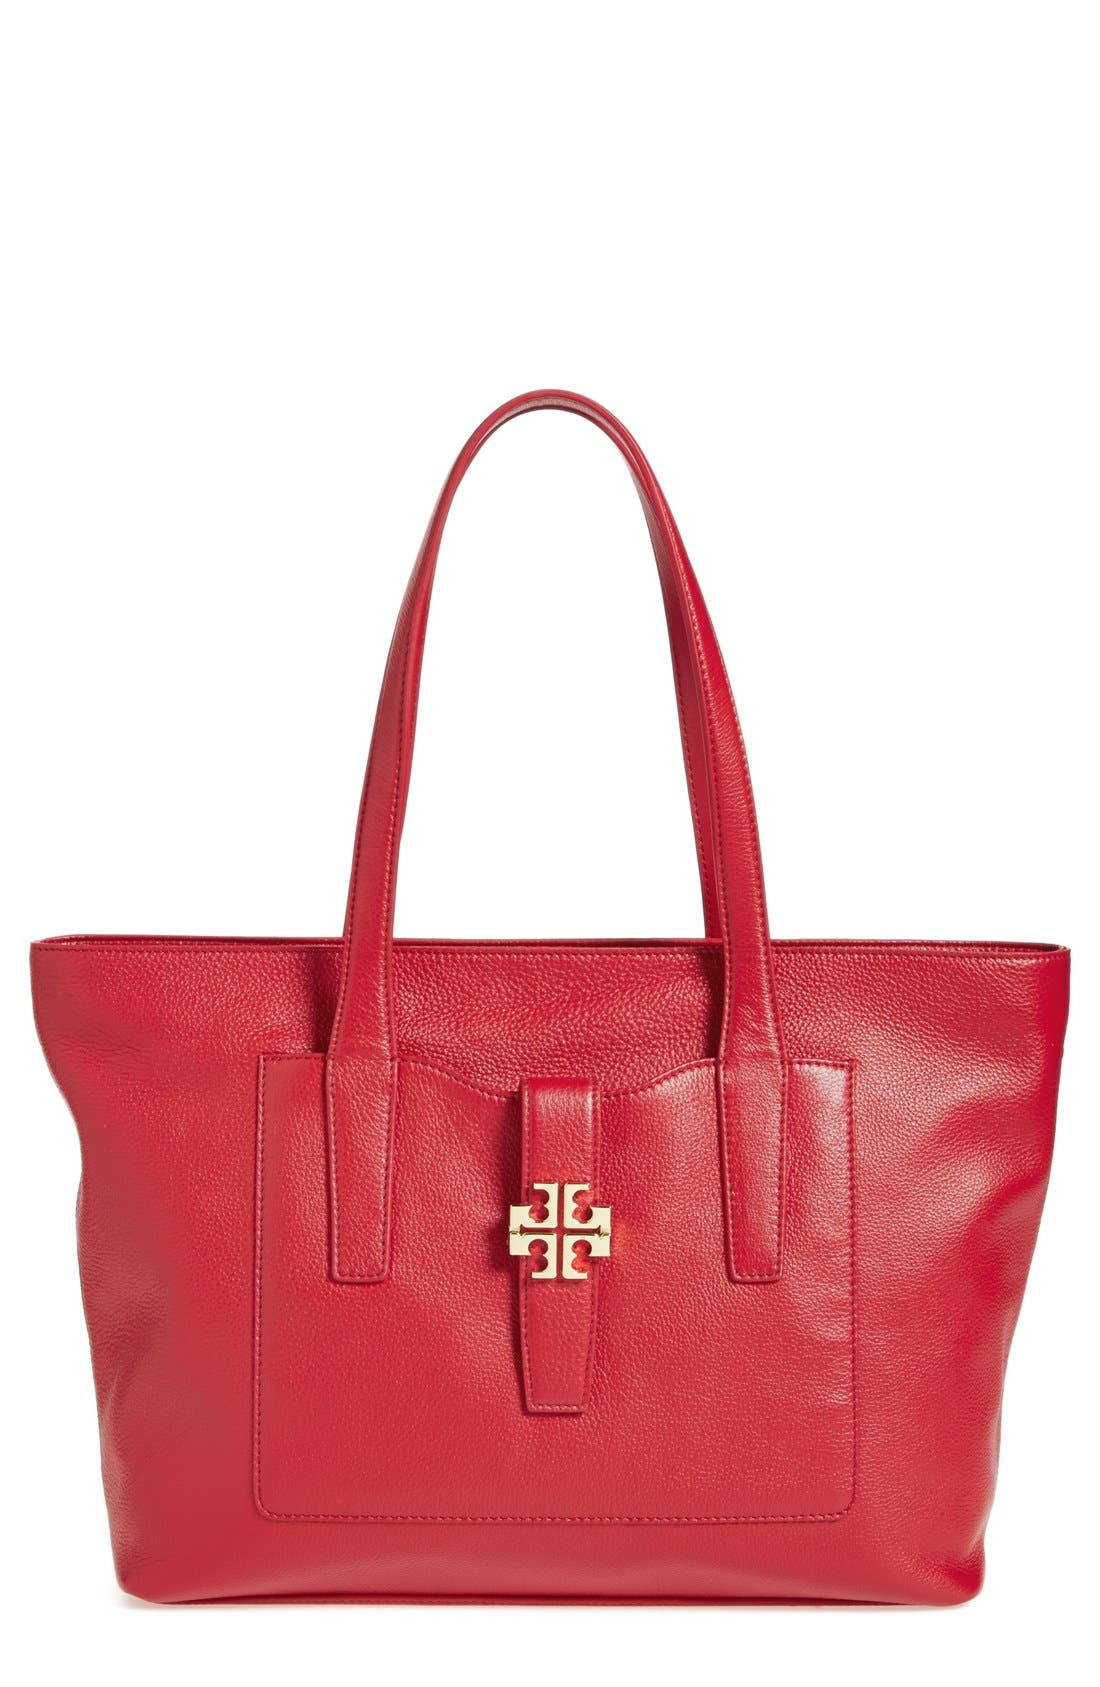 Main Image - Tory Burch 'Plaque' Tote